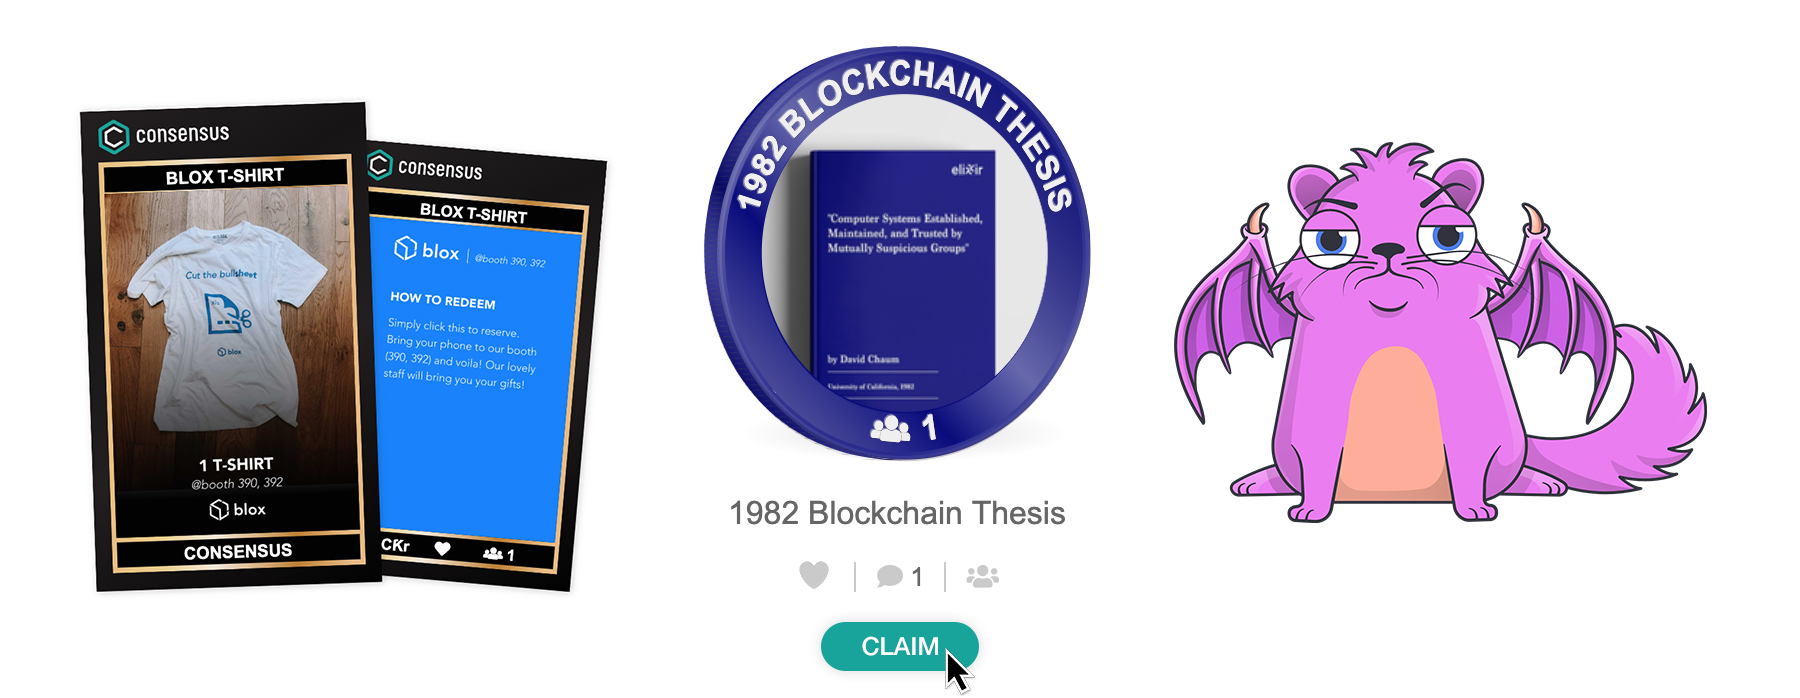 Consensus Swag Bag Media Release Images - Featured NFTs v1